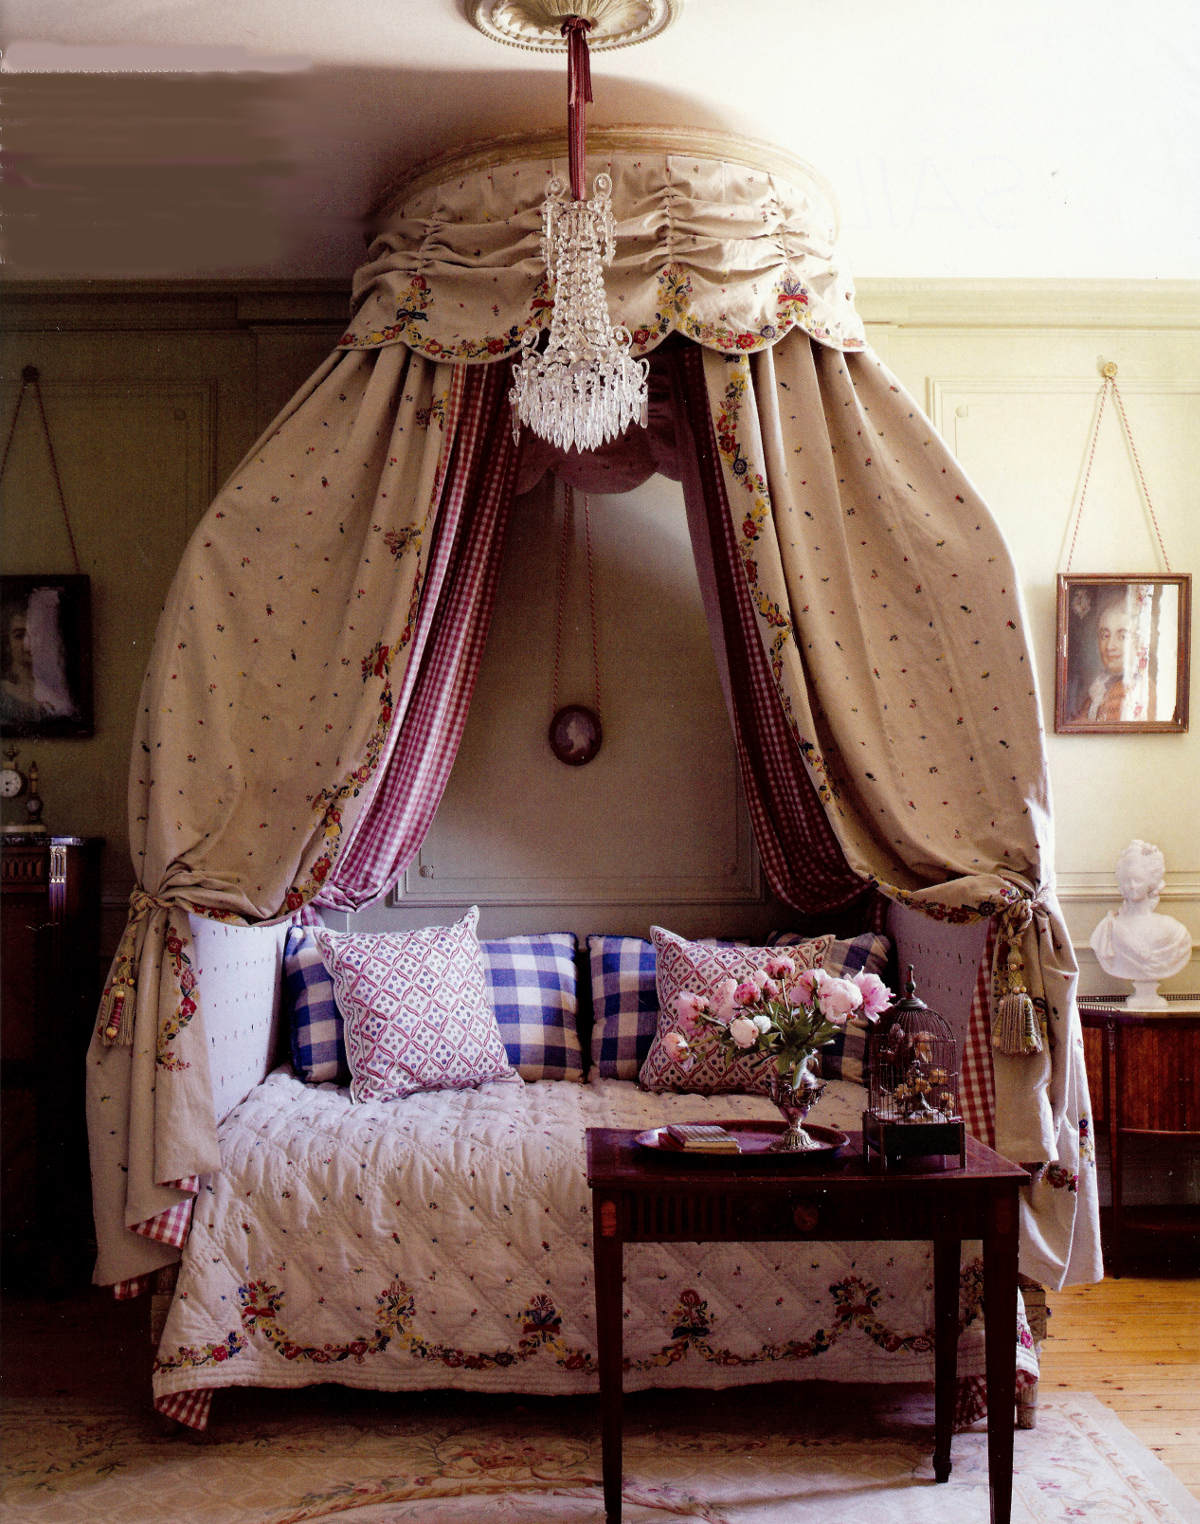 draped canopy beds - Lit a la Polonaise with custom-embroidered linen in the Gustavian style - Elle Decor via Atticmag